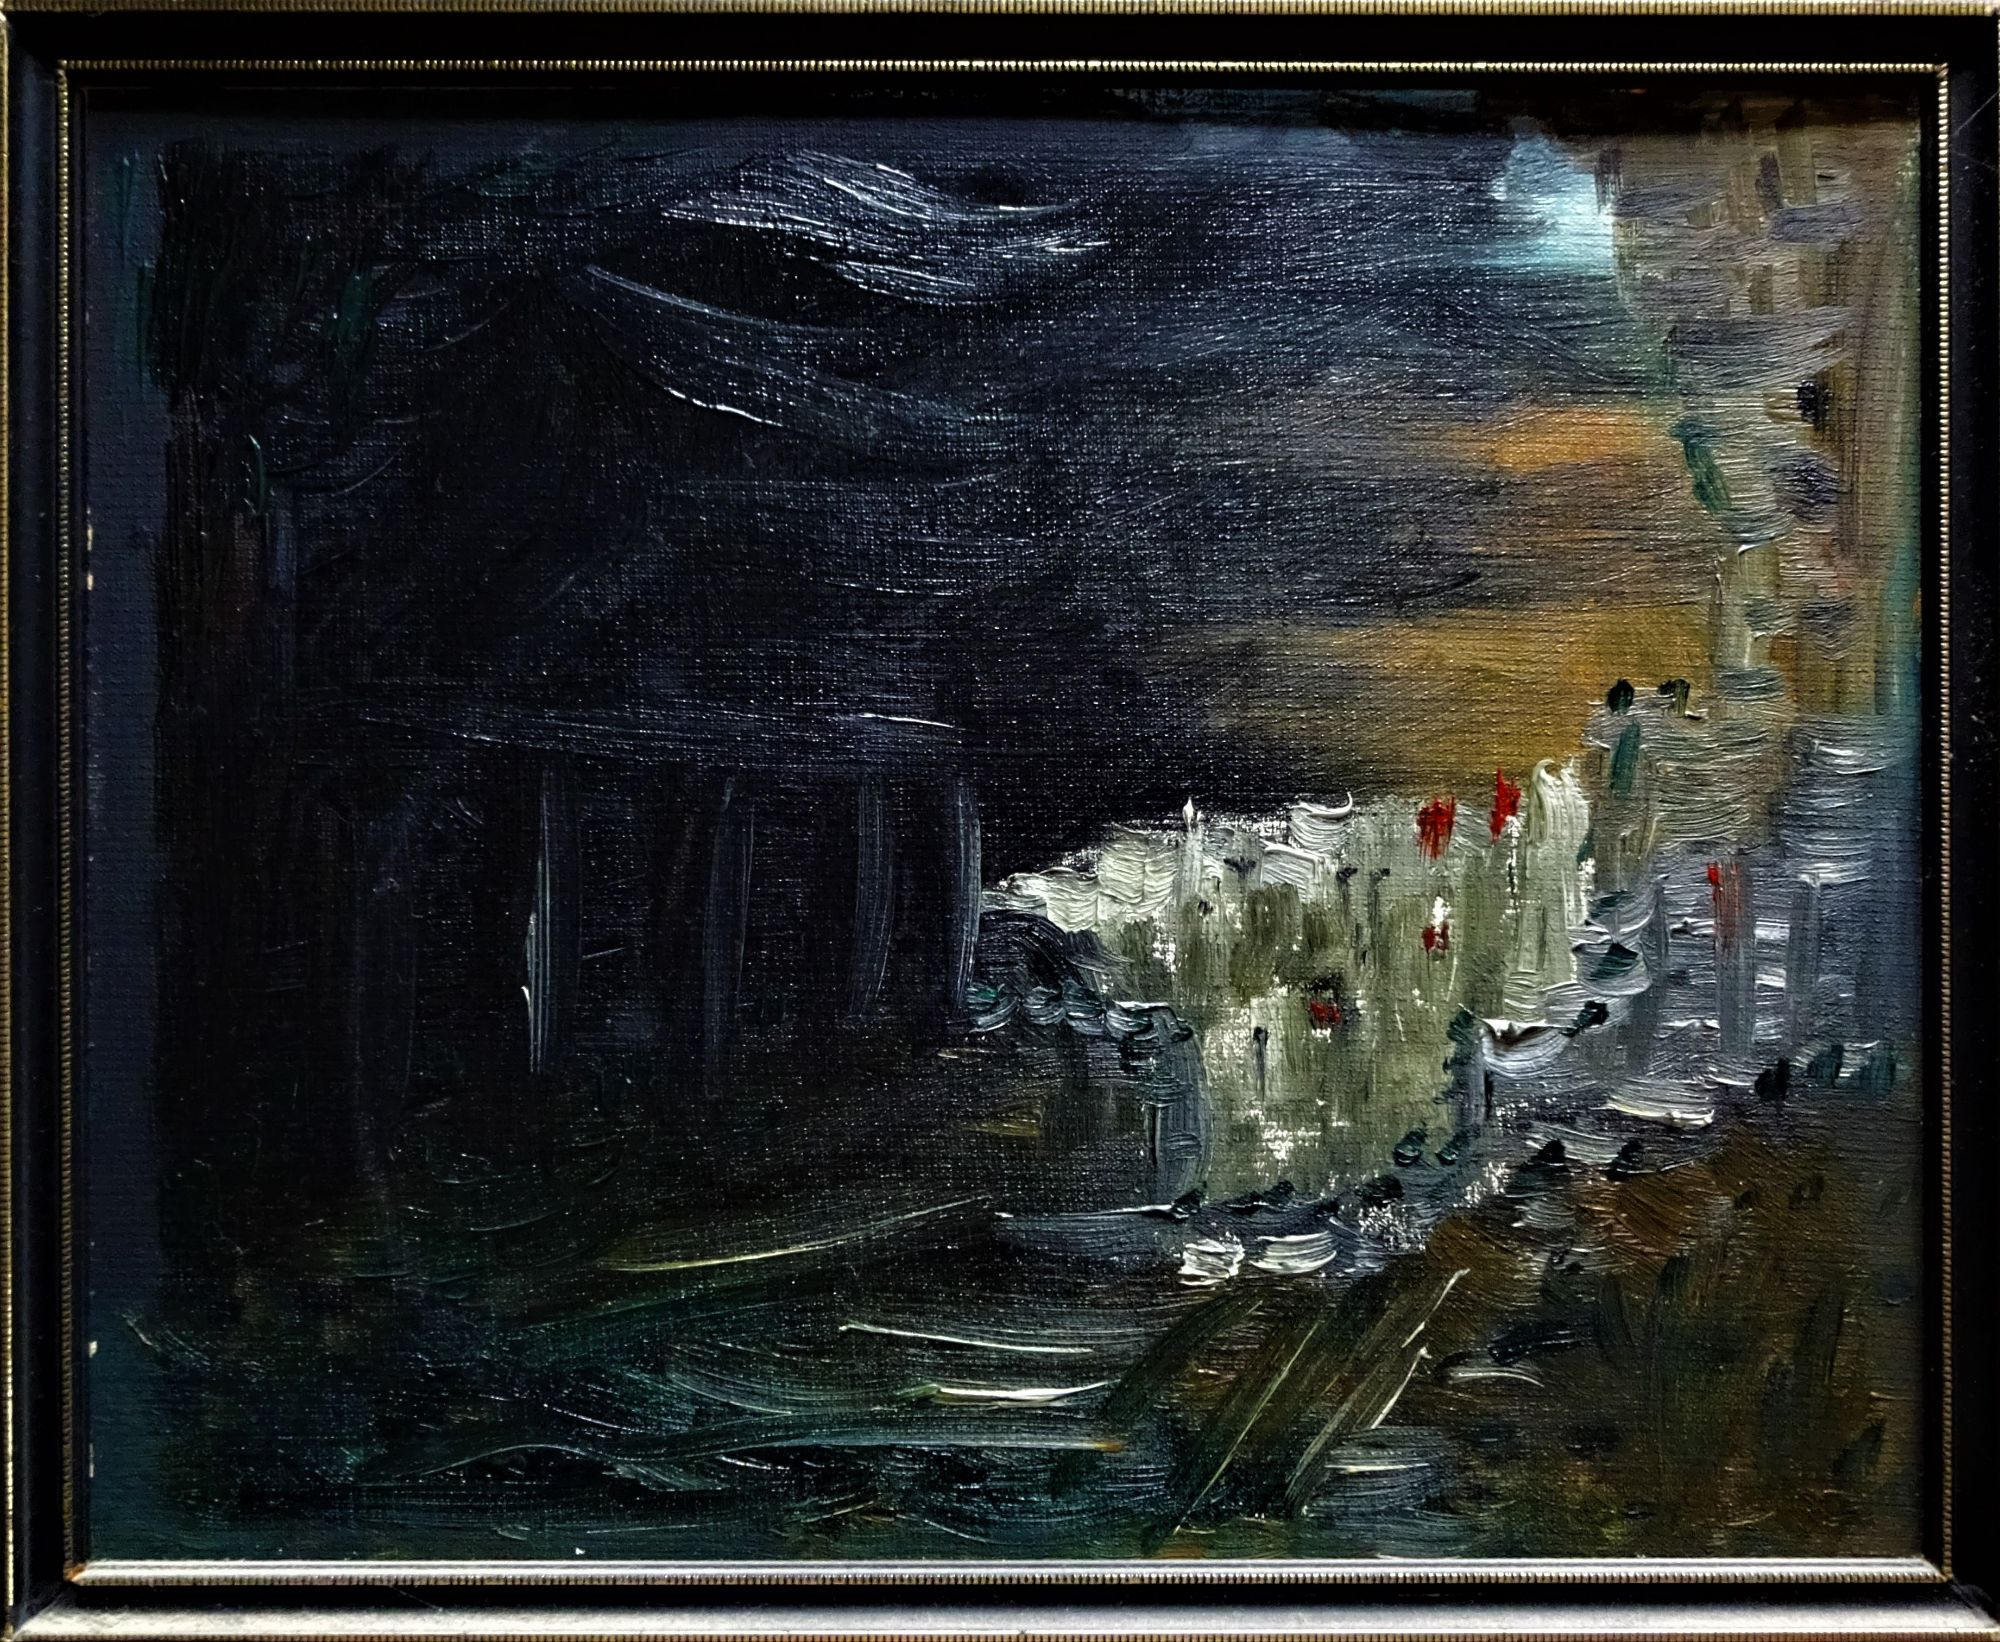 Fuller, R.B., oil on board, The End of the Trail, signed and dated 1976.